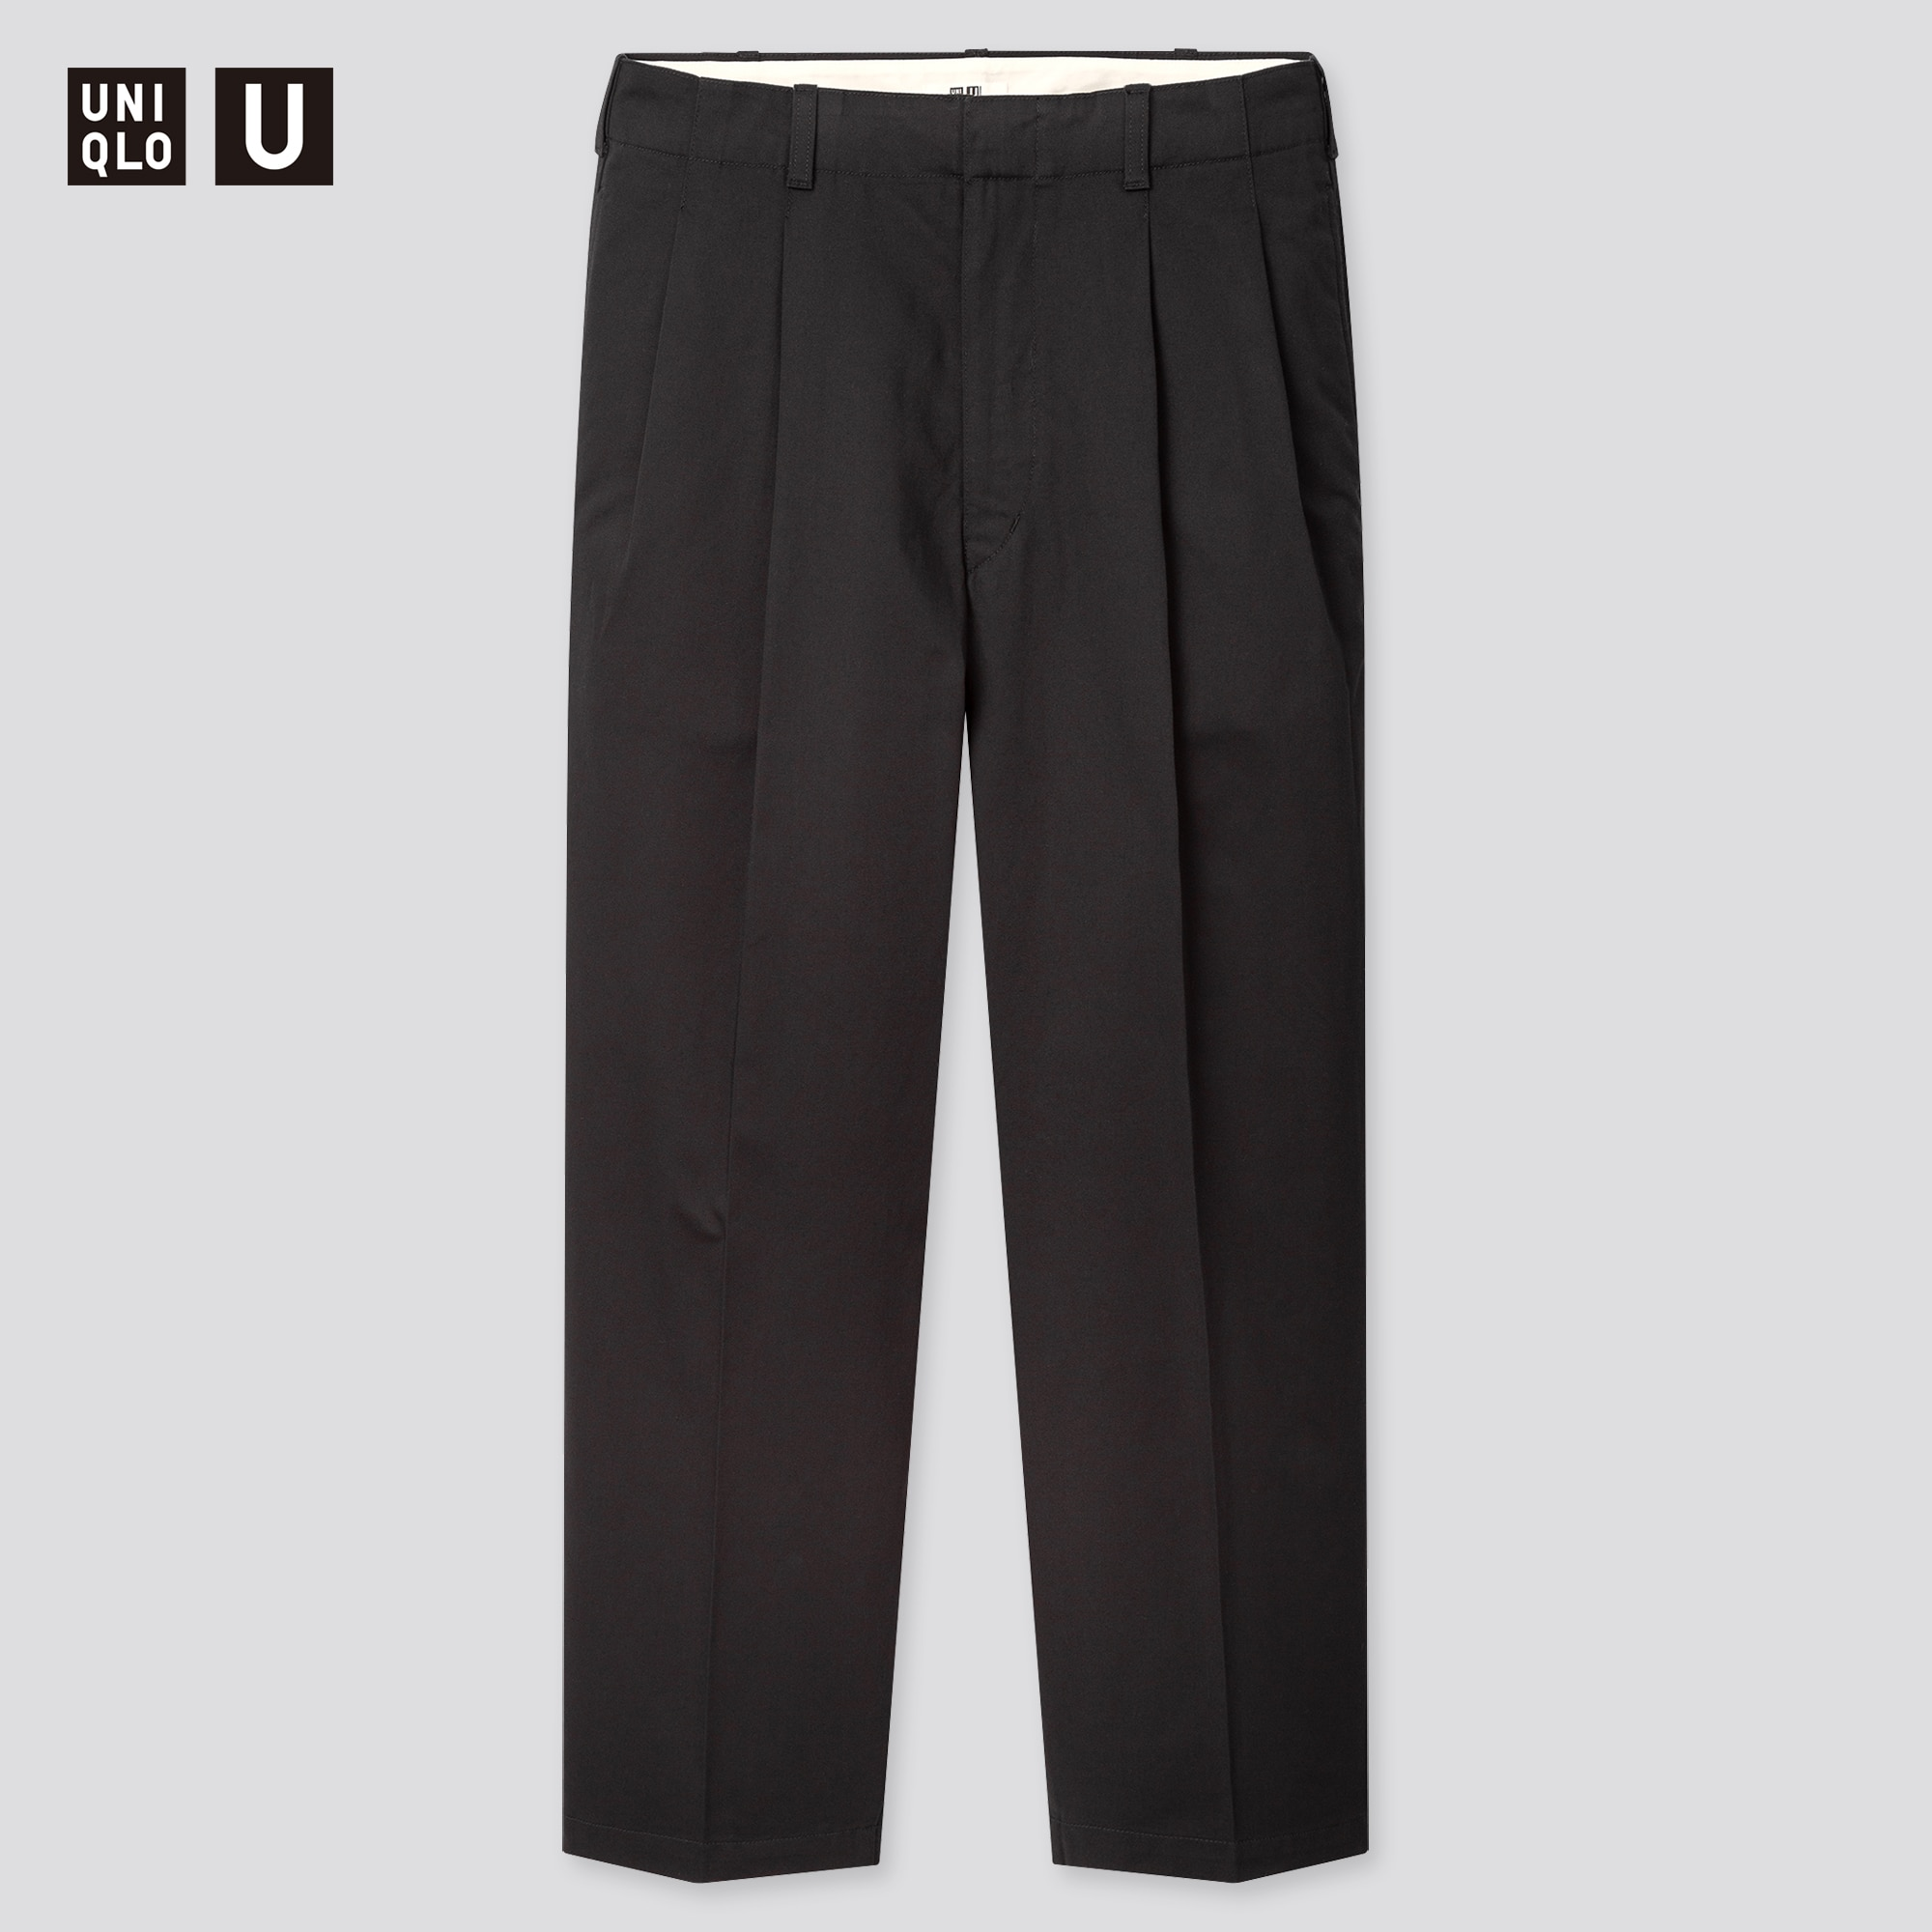 Metric Size C152 IN Black 153013709900C152 Trousers Size 36//34